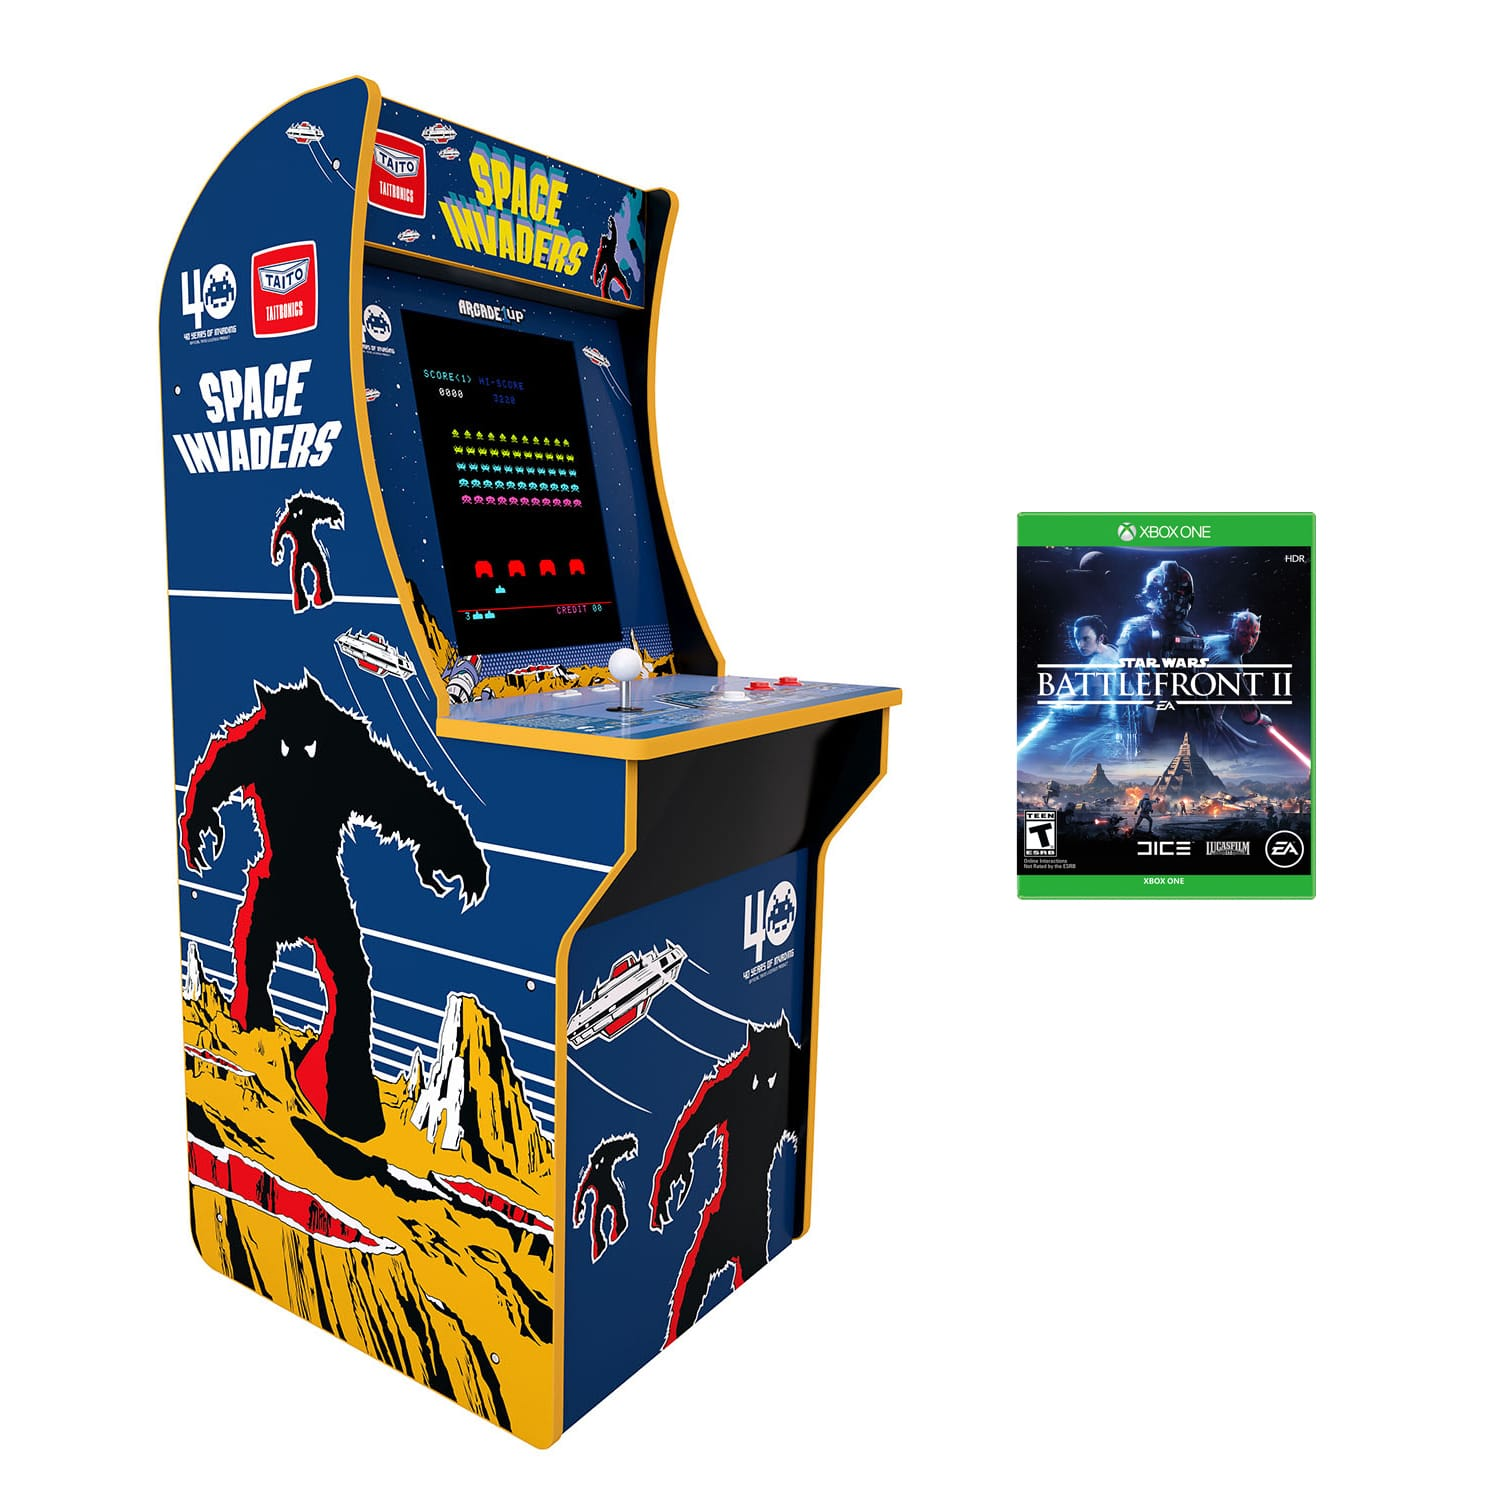 Arcade1up Space Invaders bundle $150 shipped